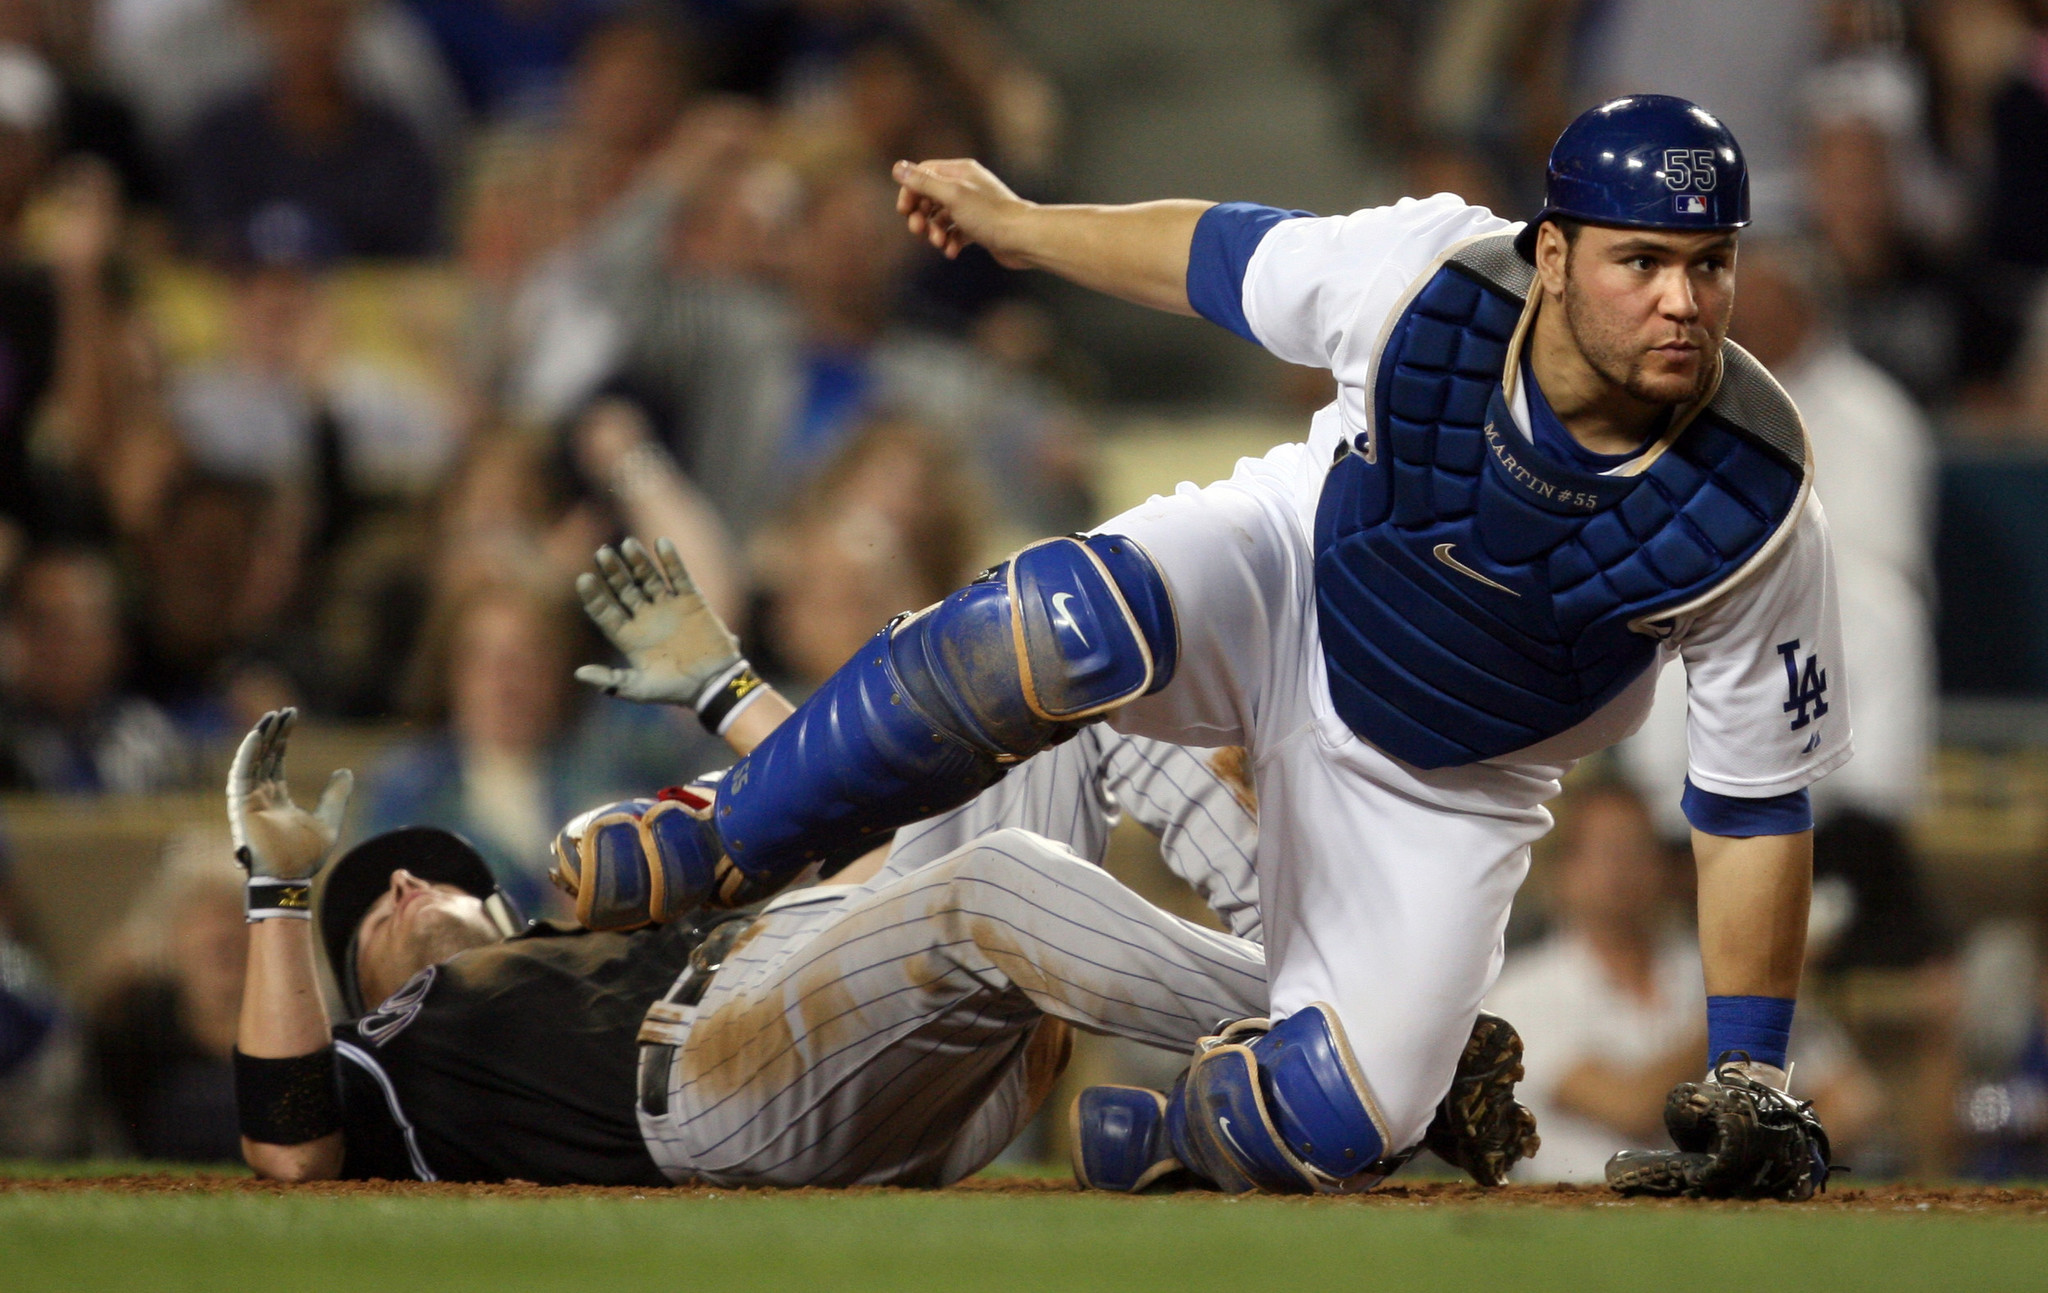 Dodgers Dugout: Russell Martin is back, but where's Bryce Harper?